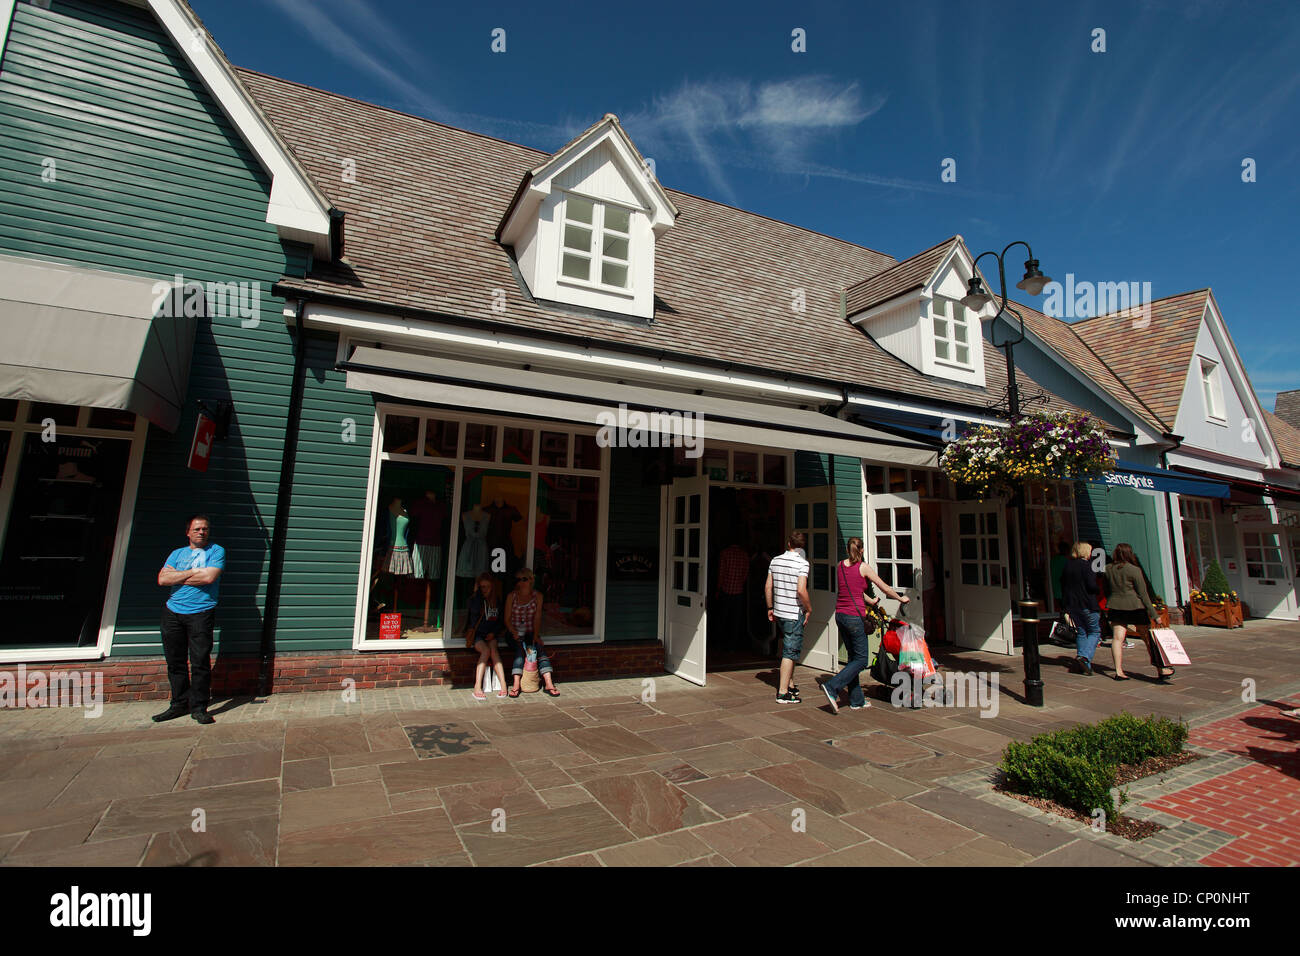 Jack Wills and Shoppers at Bicester Shopping Outlet, Oxfordshire, UK - Stock Image